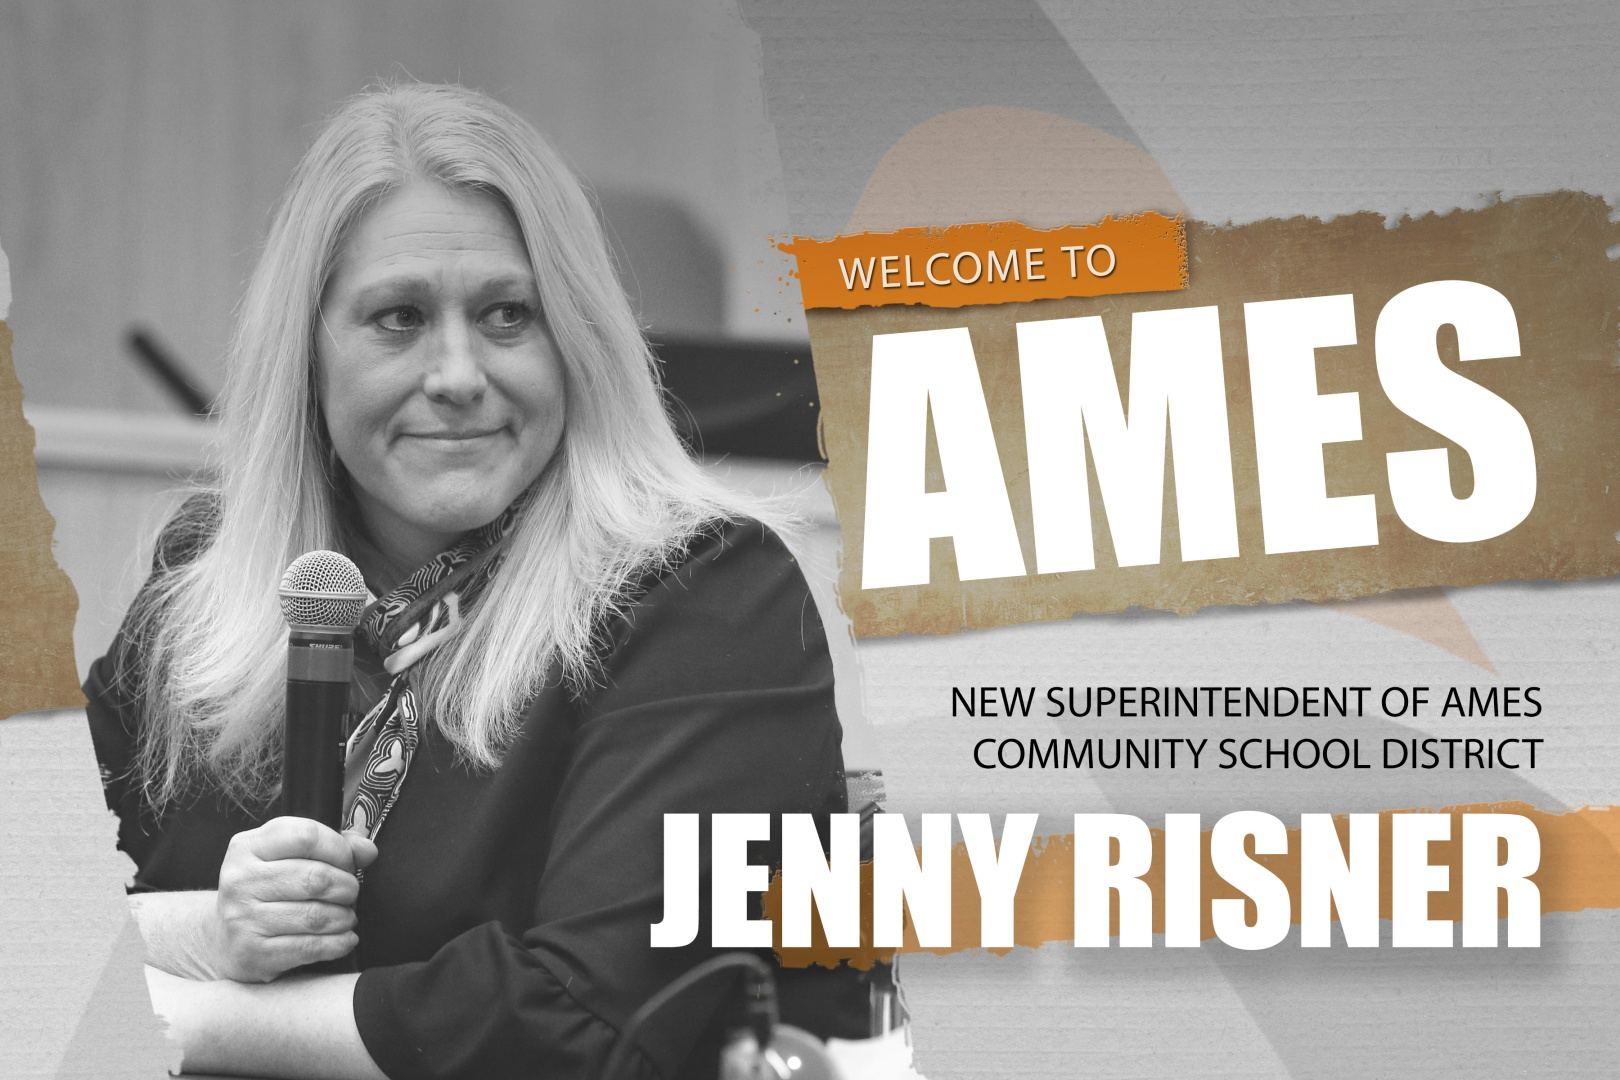 Jenny Risner named the Next Superintendent of Ames Community